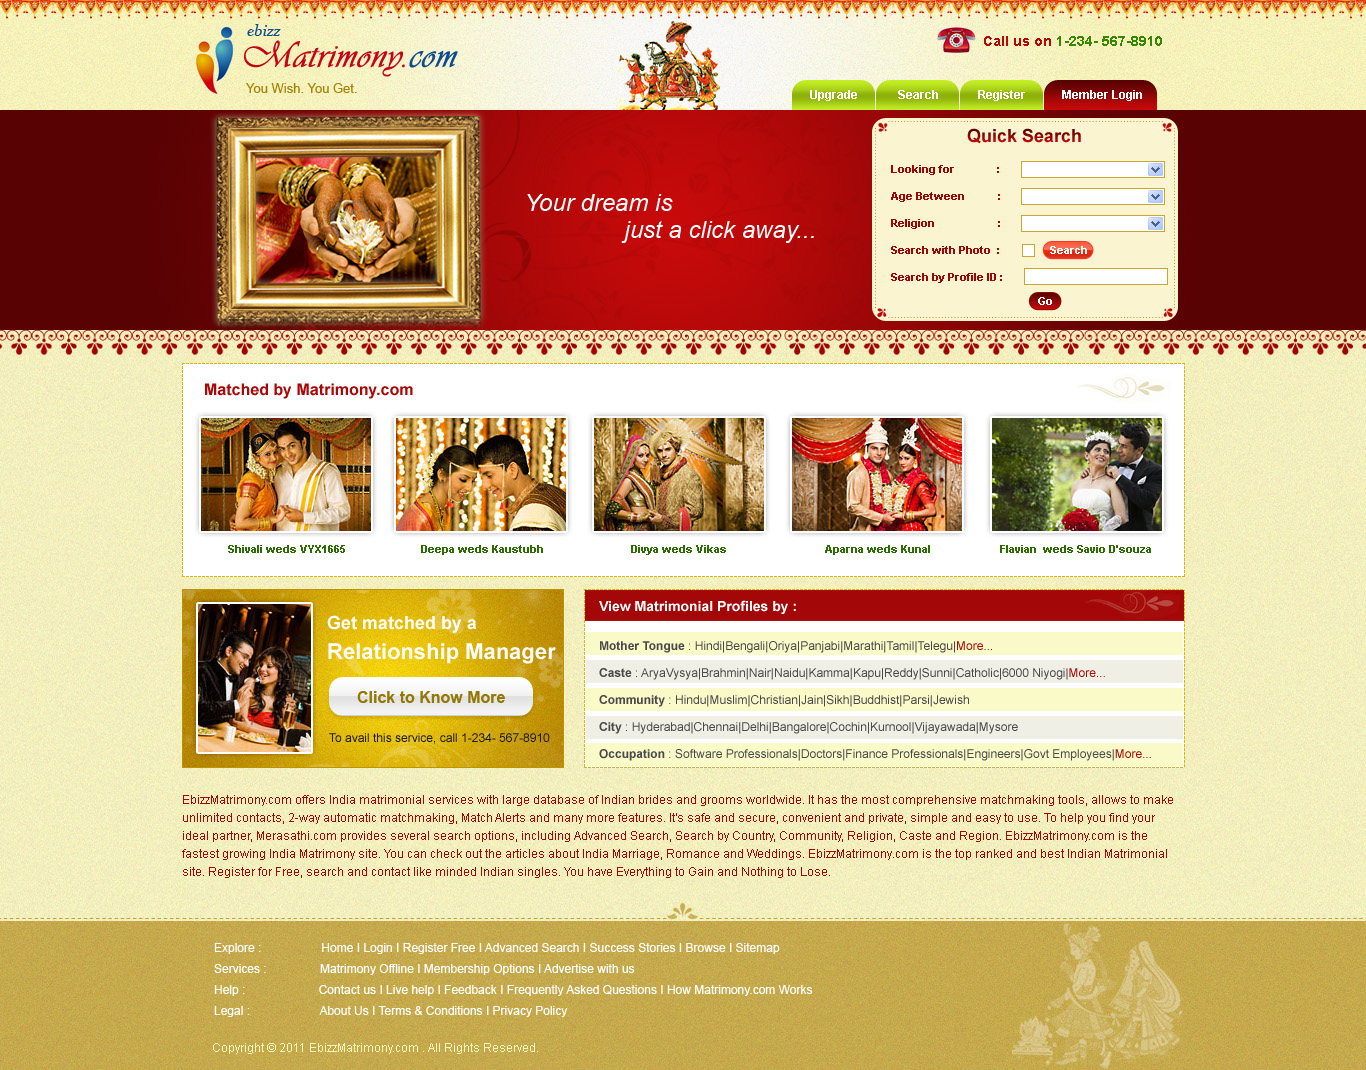 Web Templates Can Give The Exact Look For The Thought Of The - Matrimonial website templates